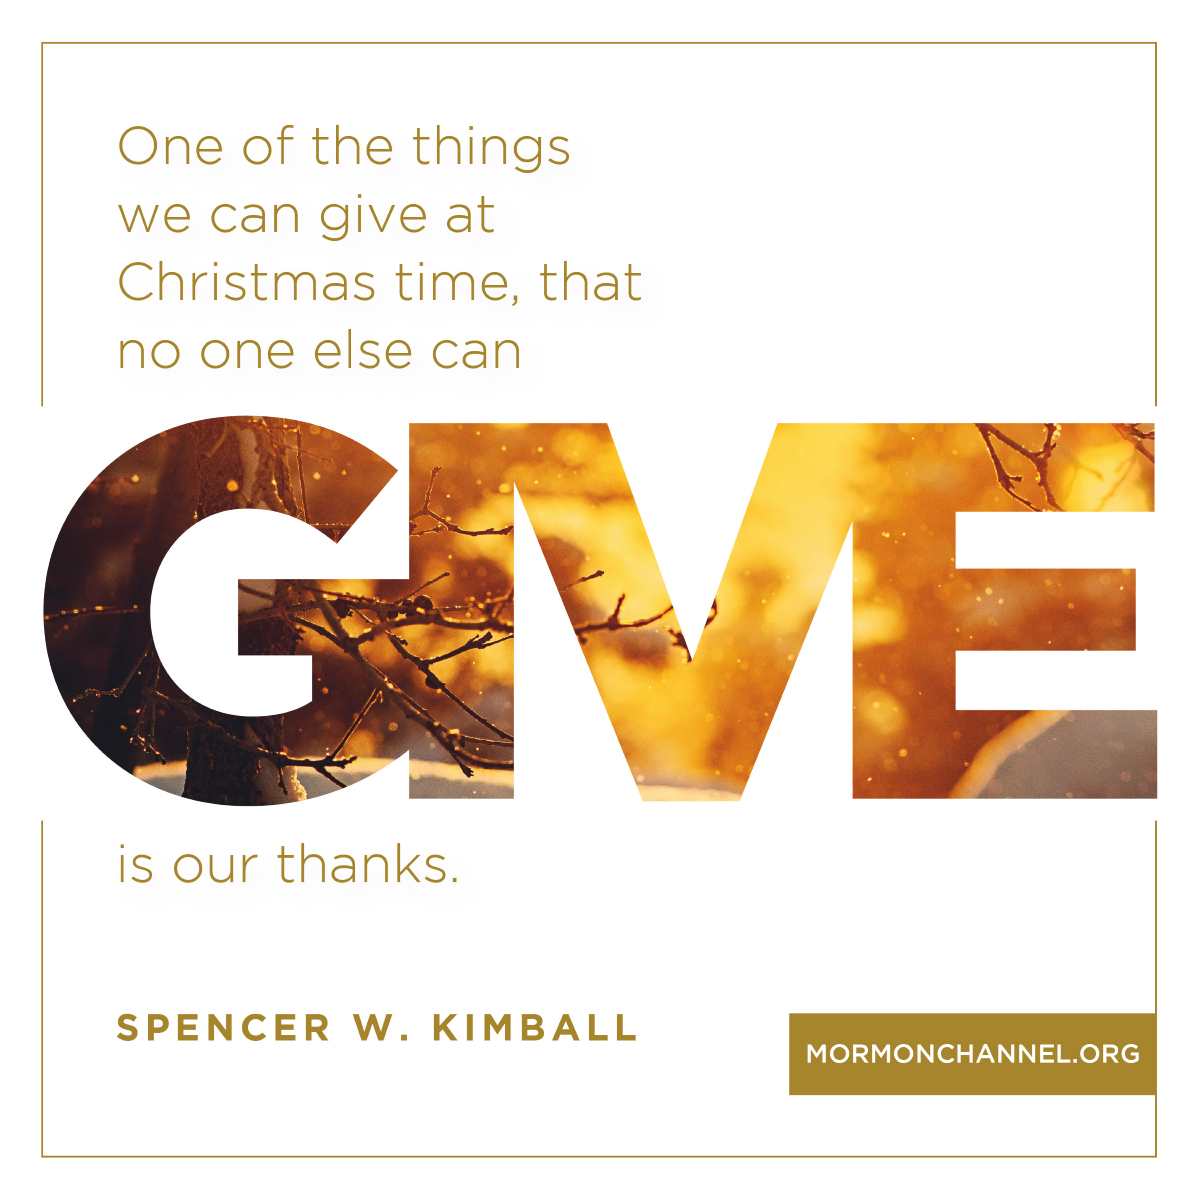 Quotes by President Spencer W. Kimball